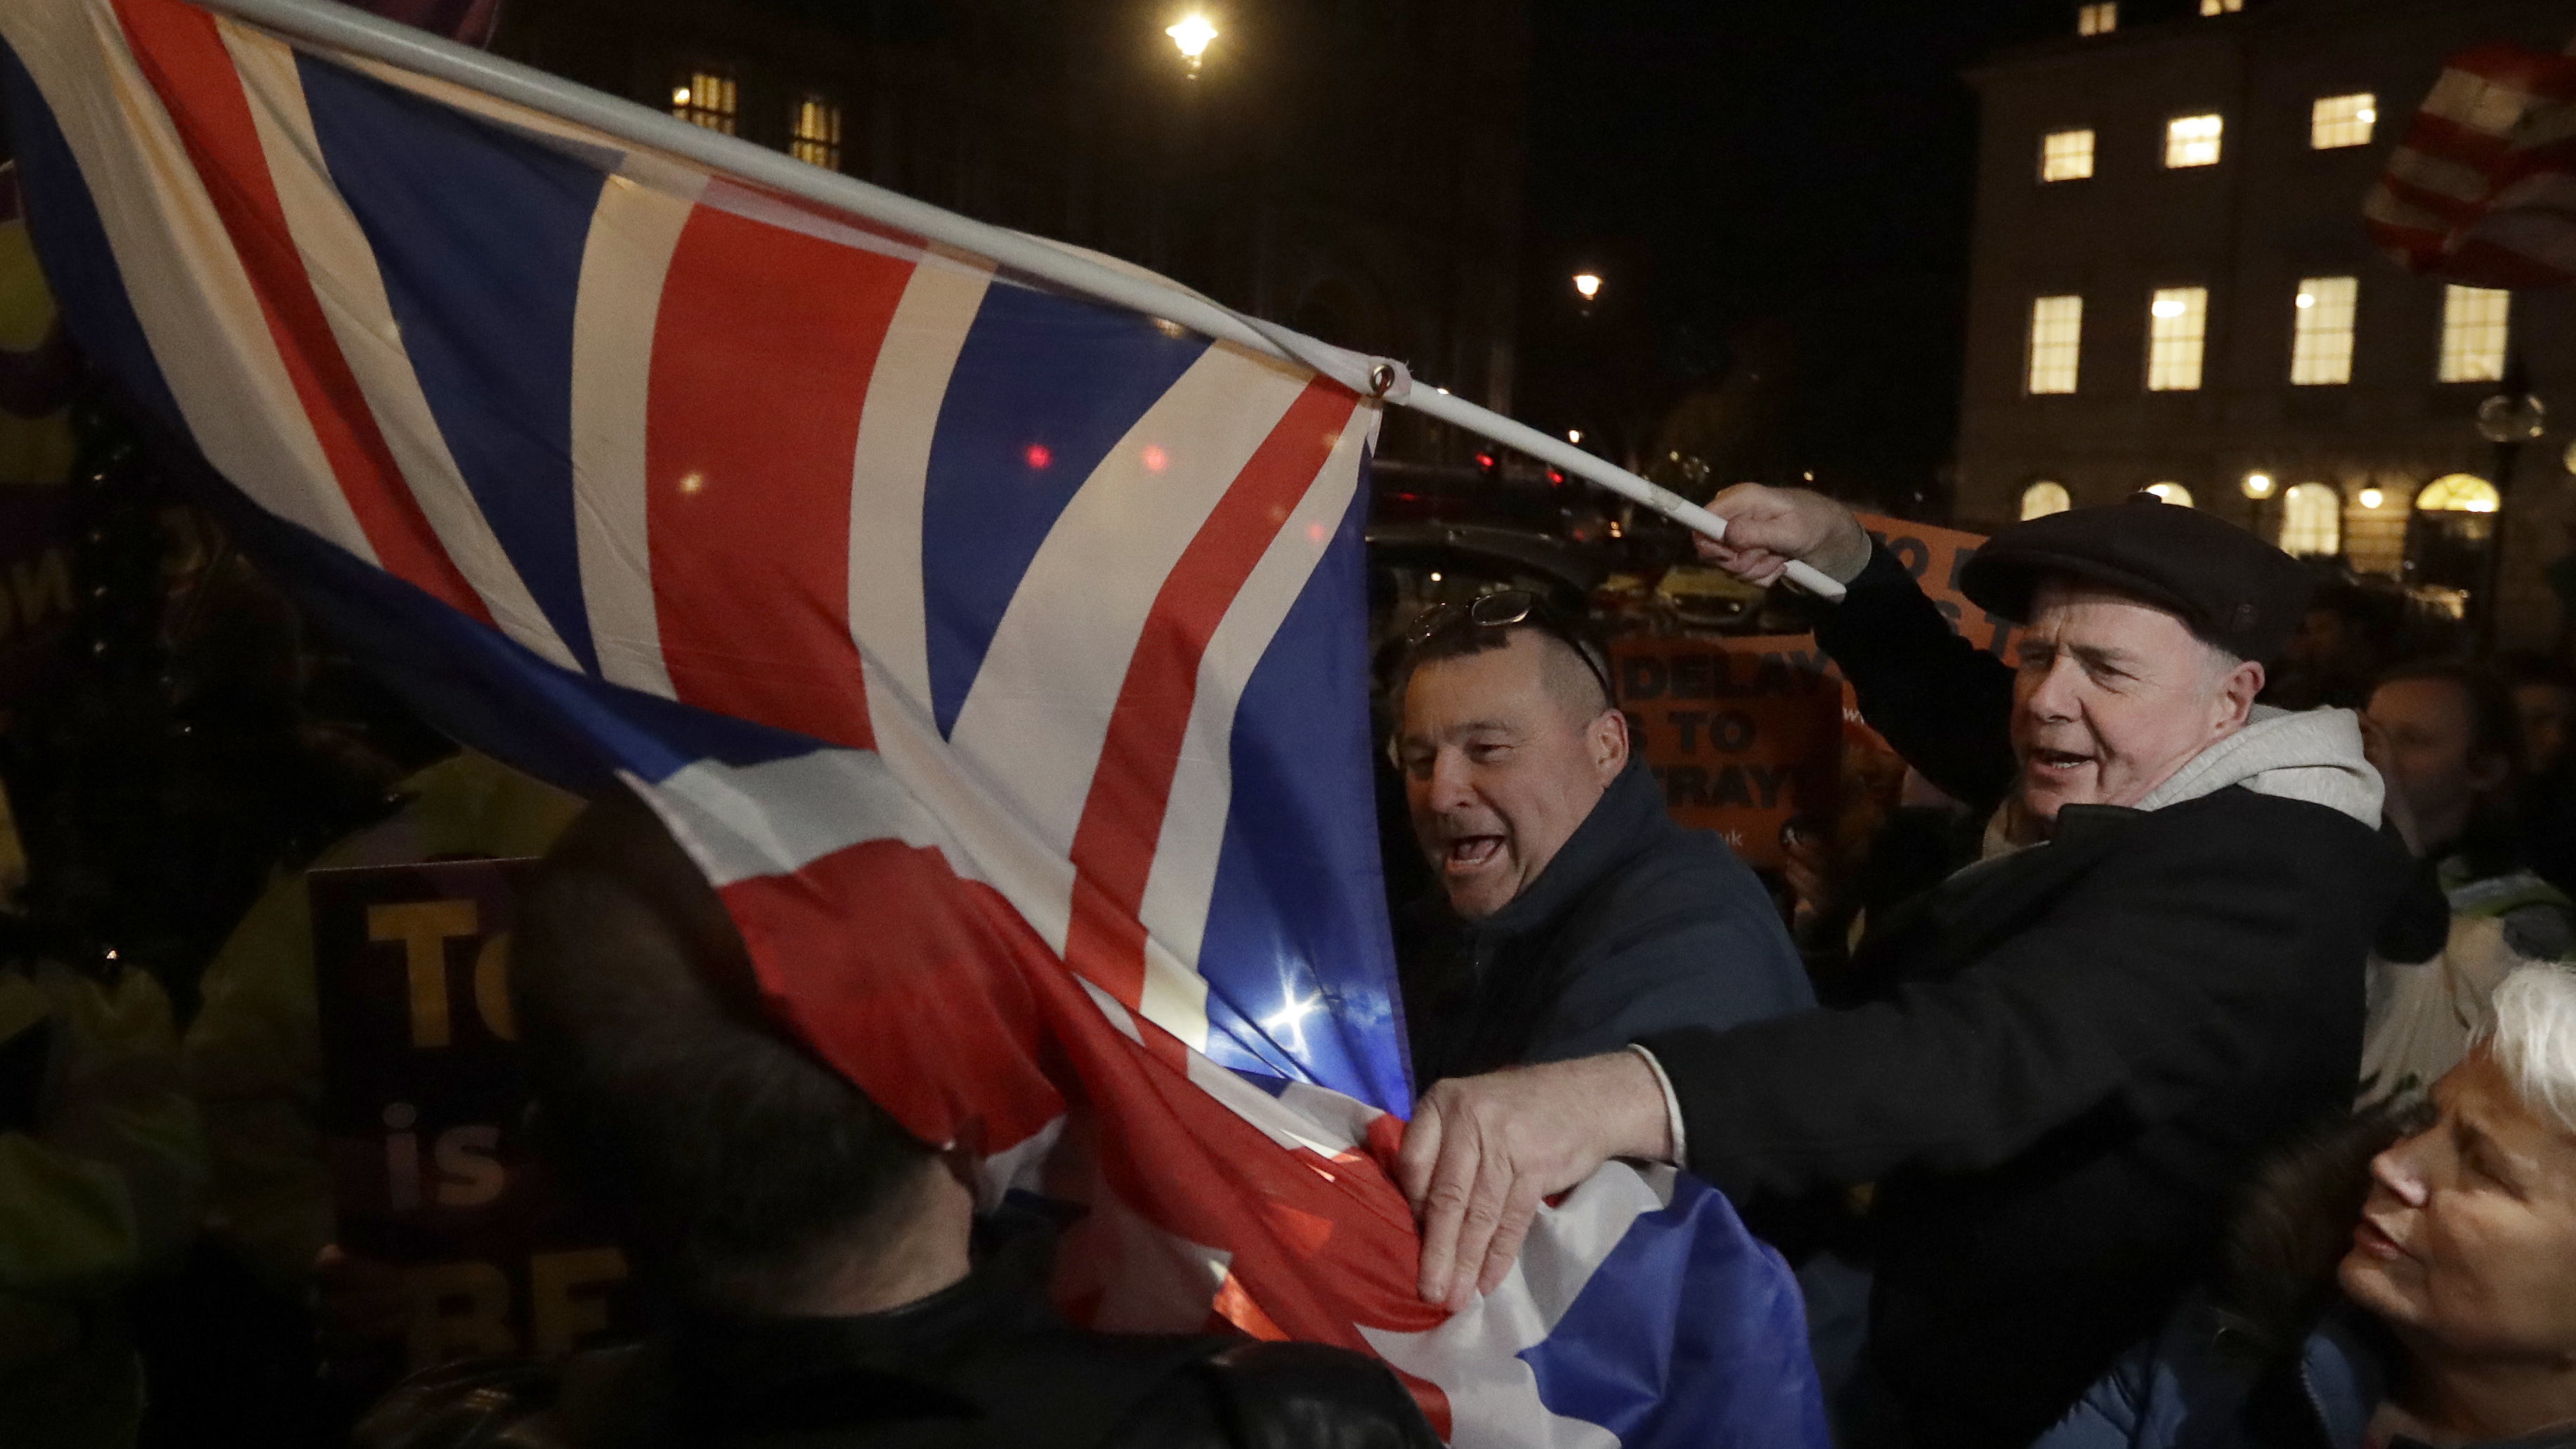 Brexit supporters and opponents shout at each other outside Parliament in London on Thursday the day that British lawmakers voted to delay Brexit